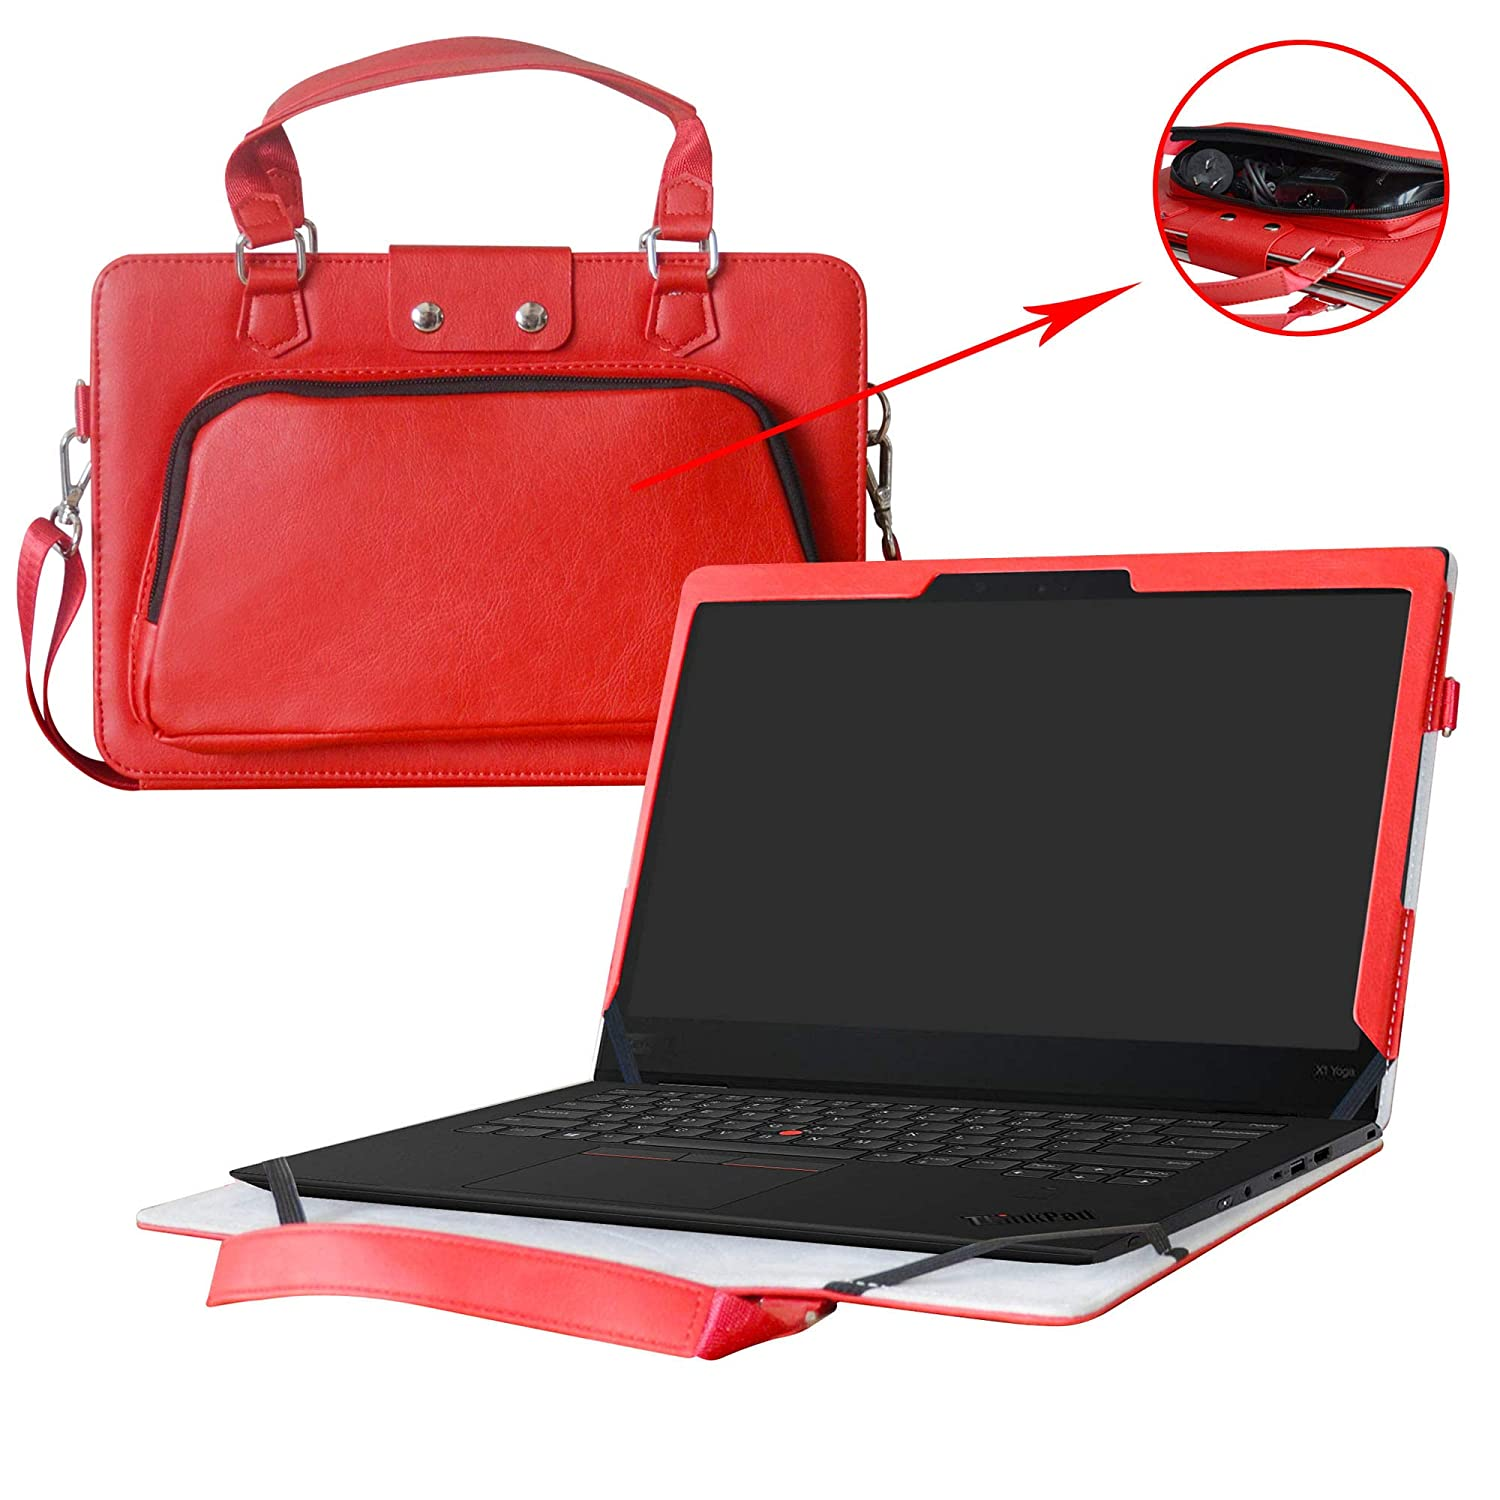 Thinkpad X1 Yoga Funda,2 in 1 Diseñado Especialmente La ...